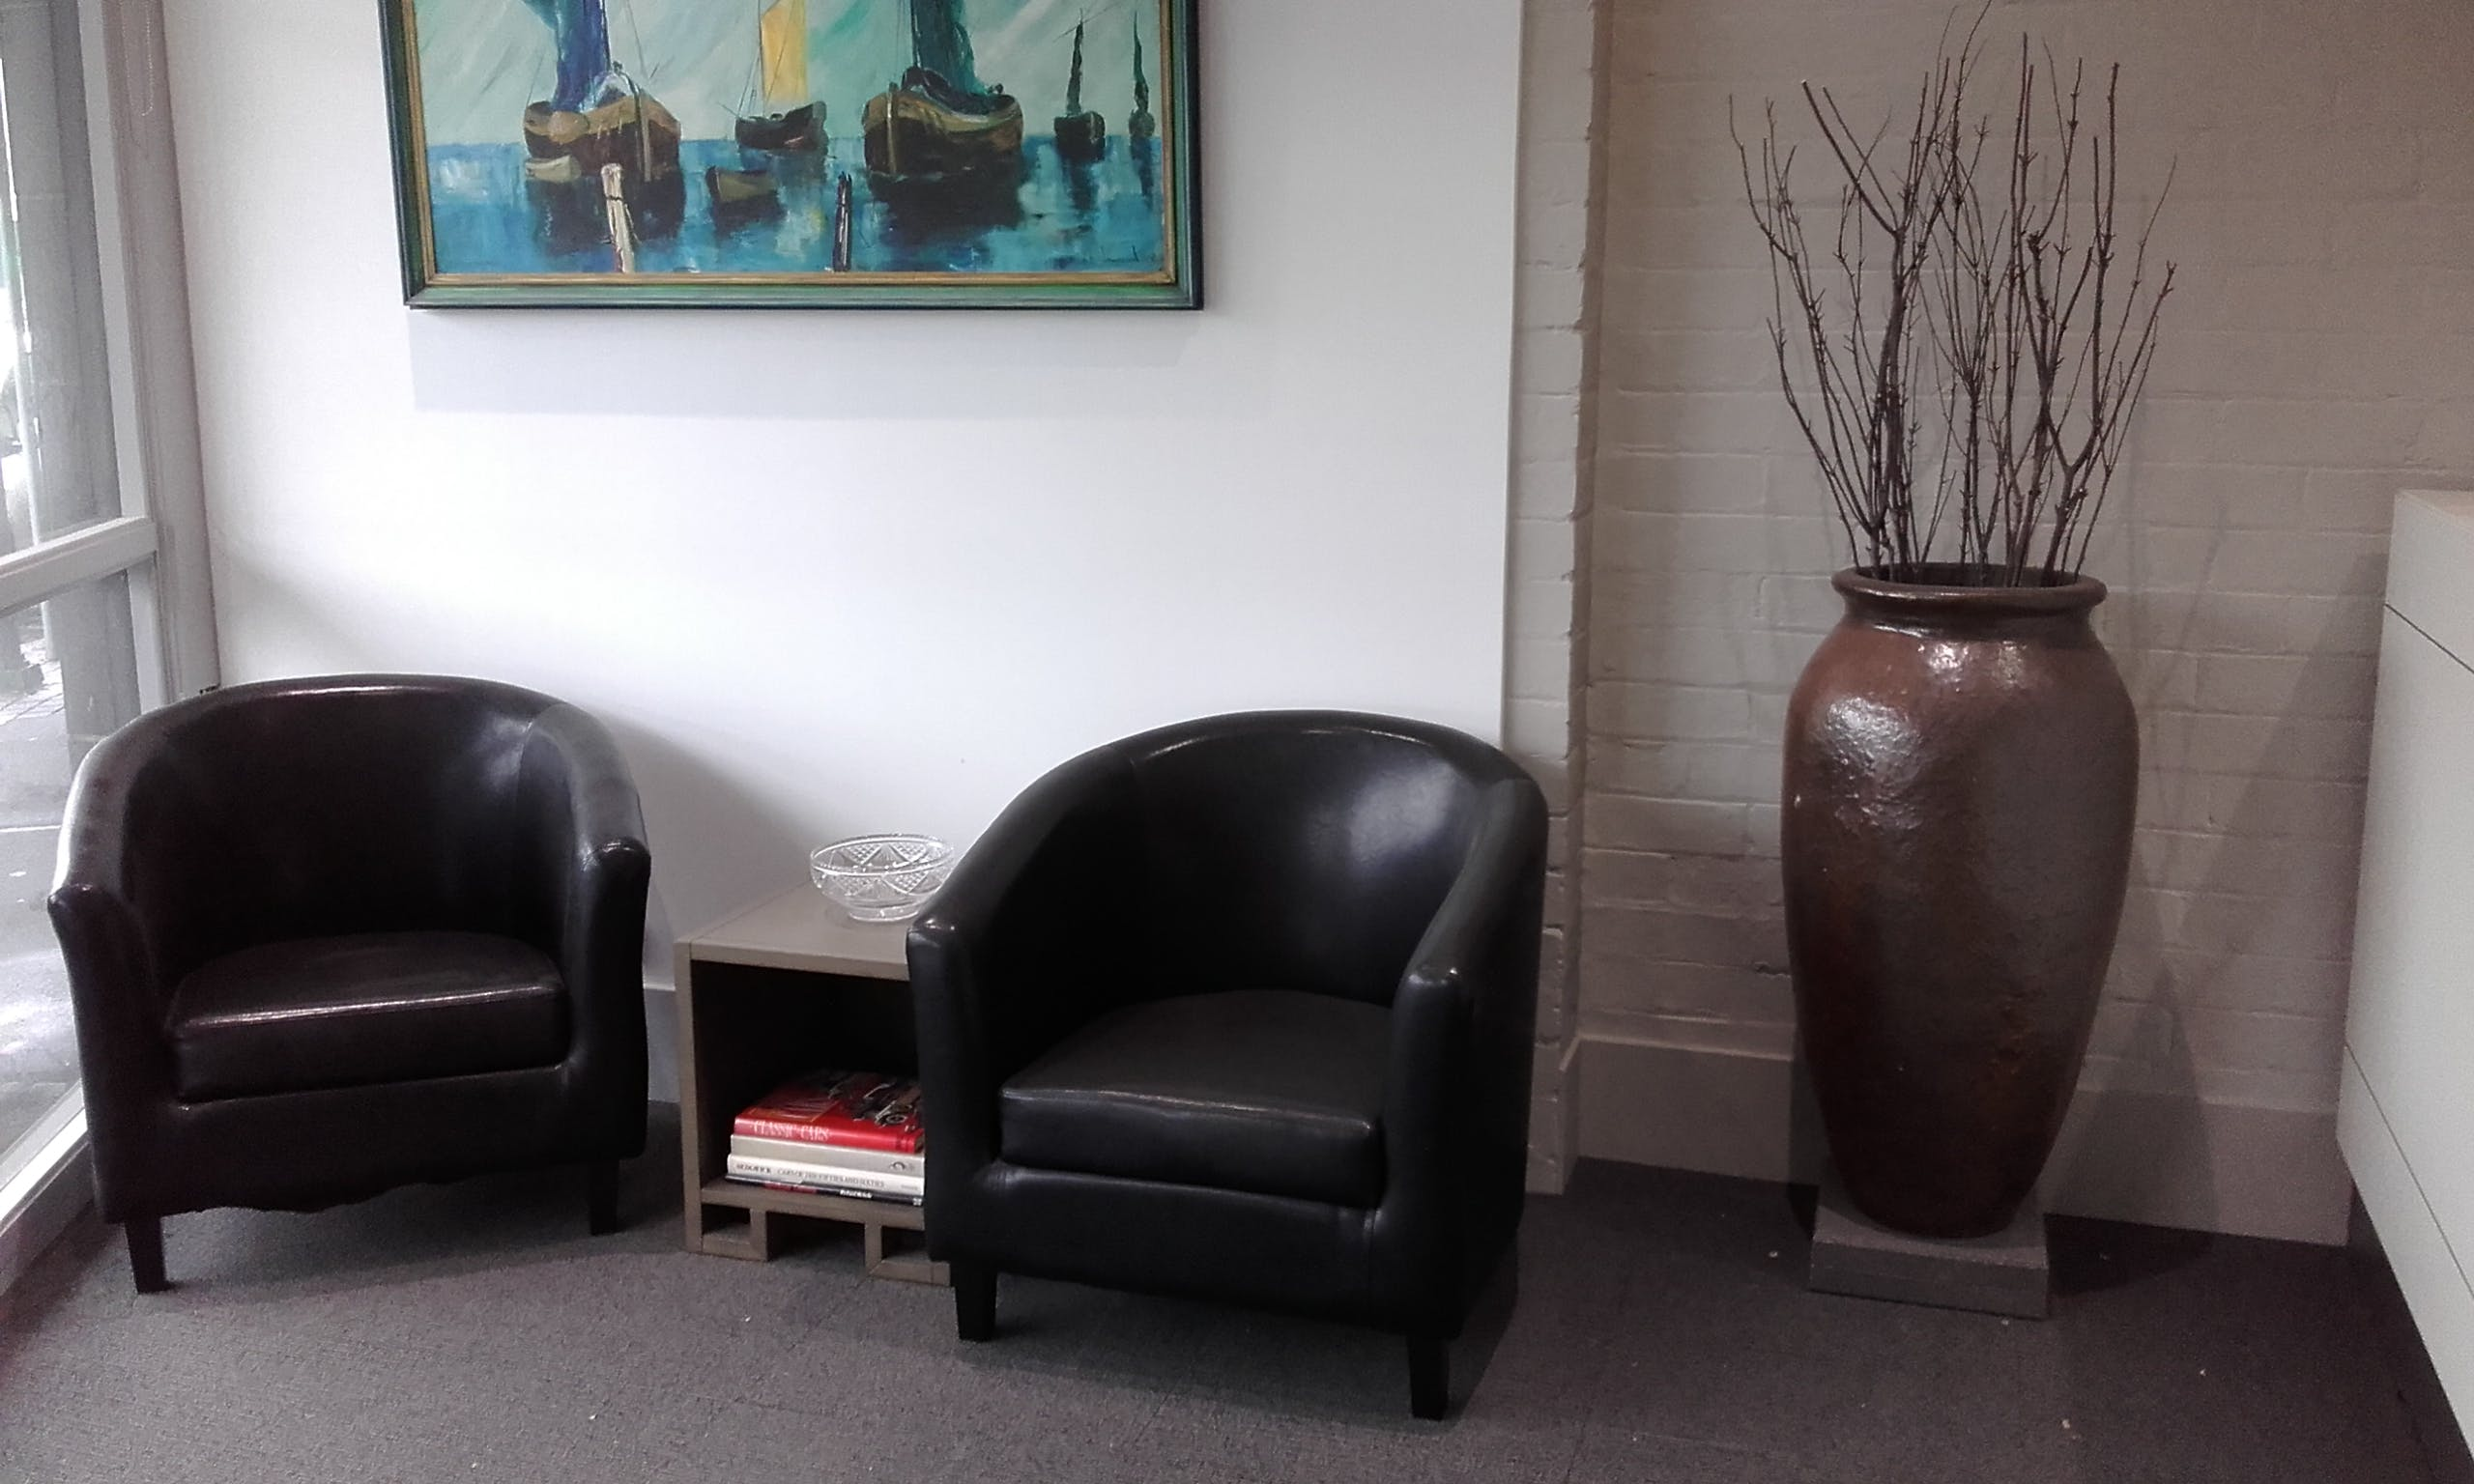 Open Space, multi-use area at Emerald City Investments Pty Ltd, image 1